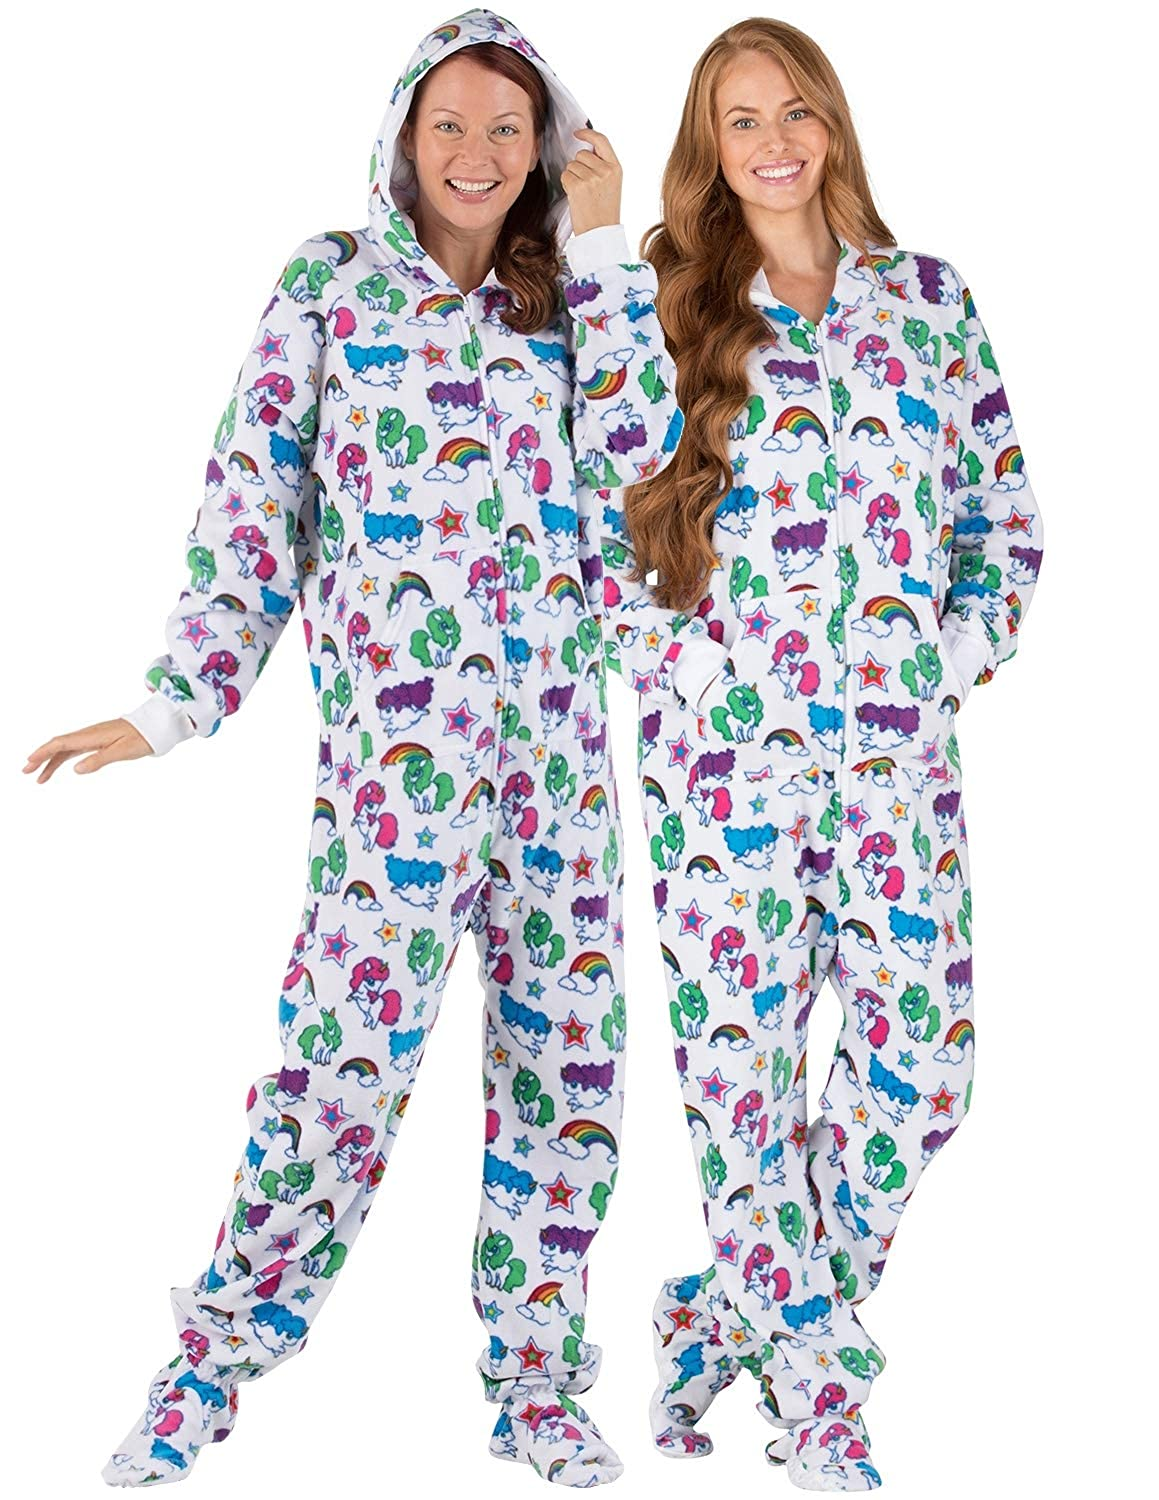 f0117f3d1a Amazon.com  Footed Pajamas - Rainbows N  Unicorns Adult Hoodie Fleece  Onesie  Clothing